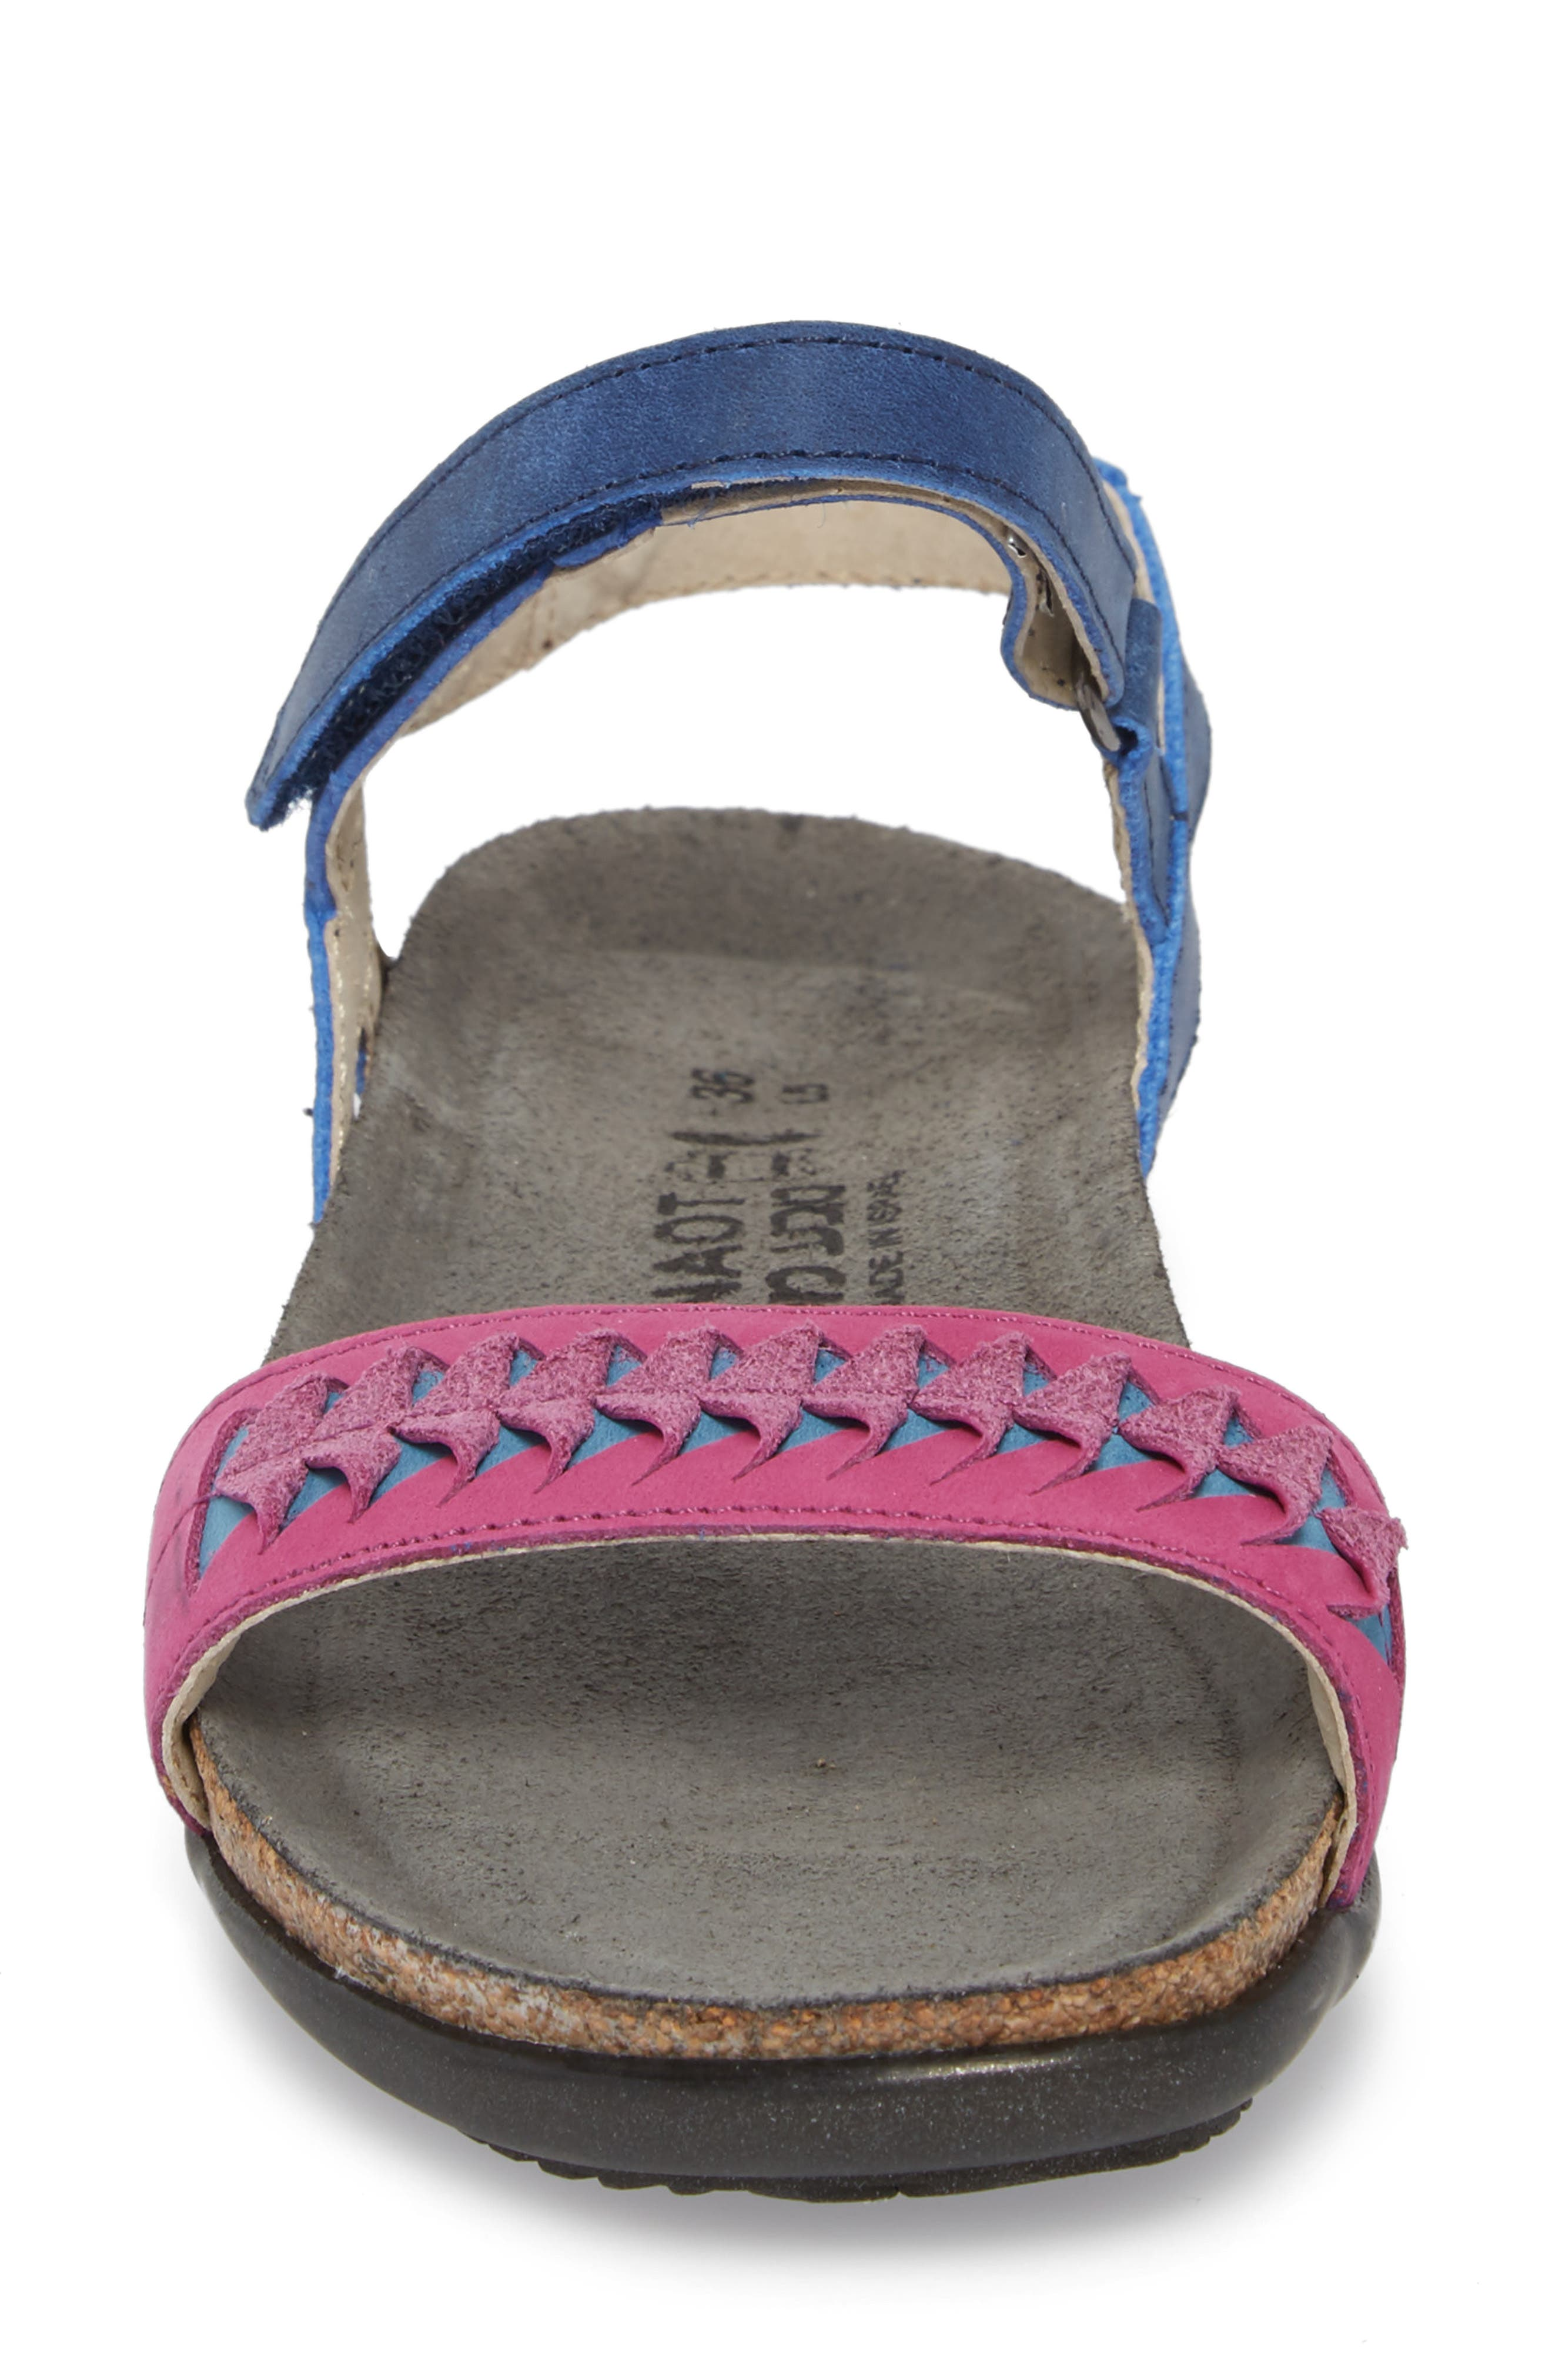 Marble Sandal,                             Alternate thumbnail 4, color,                             Oily Blue Nubuck